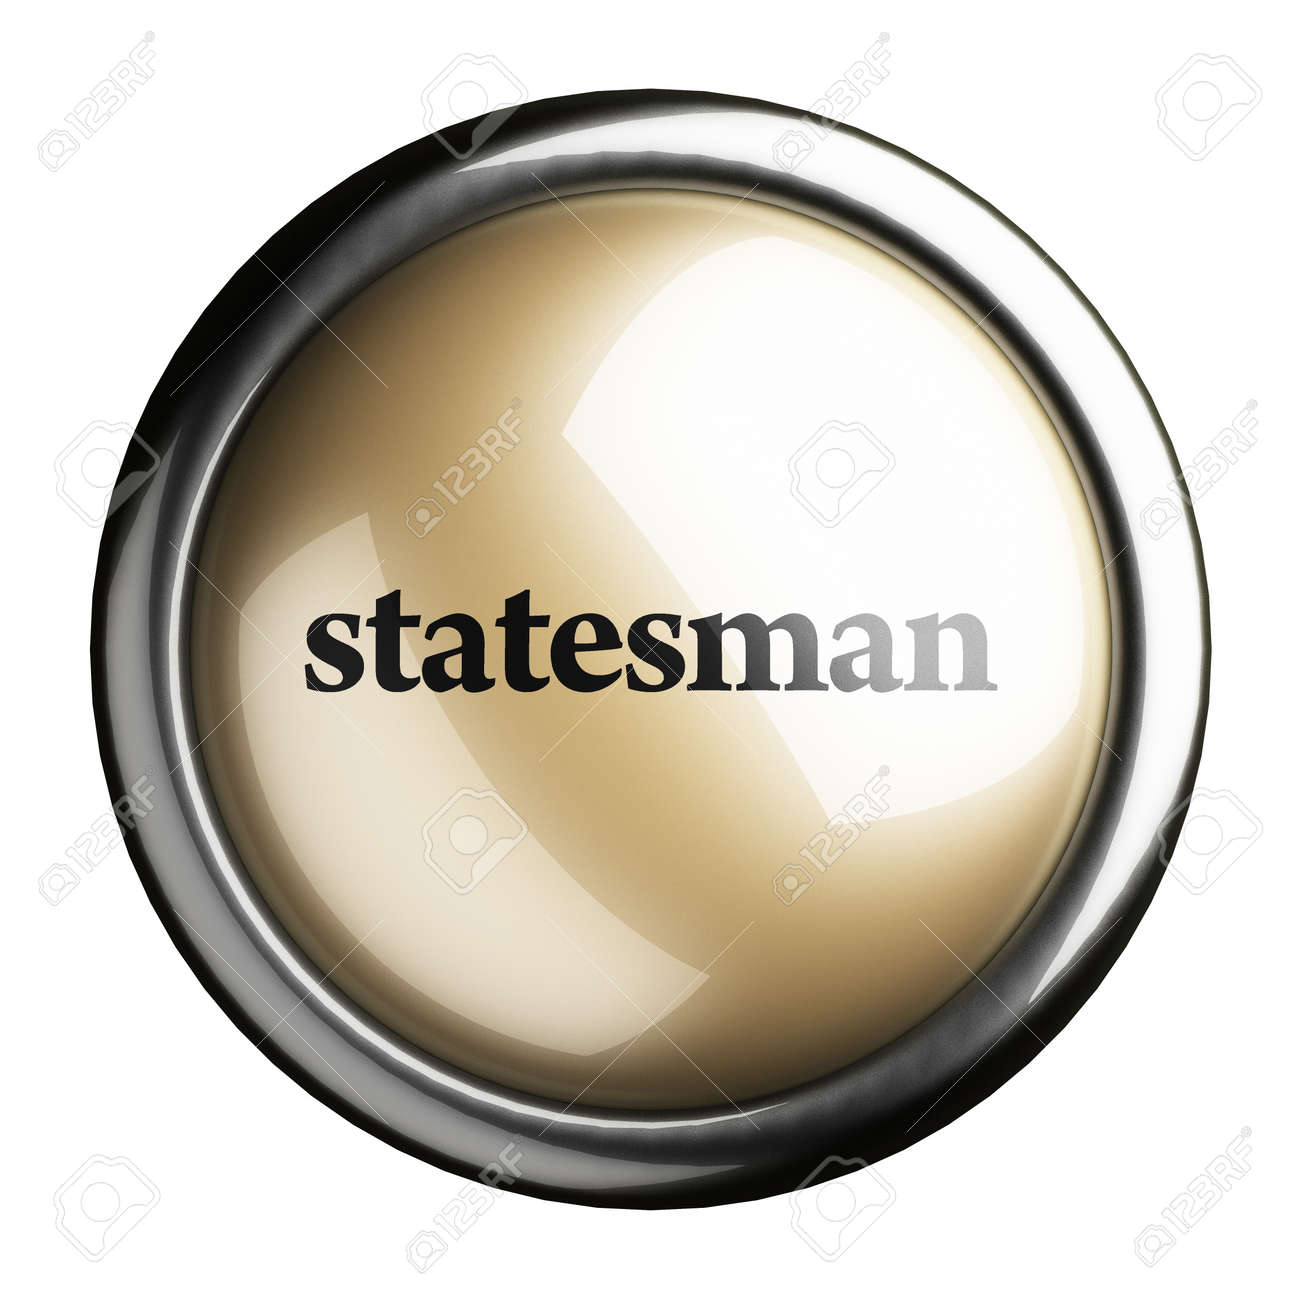 Word on the button Stock Photo - 17746926